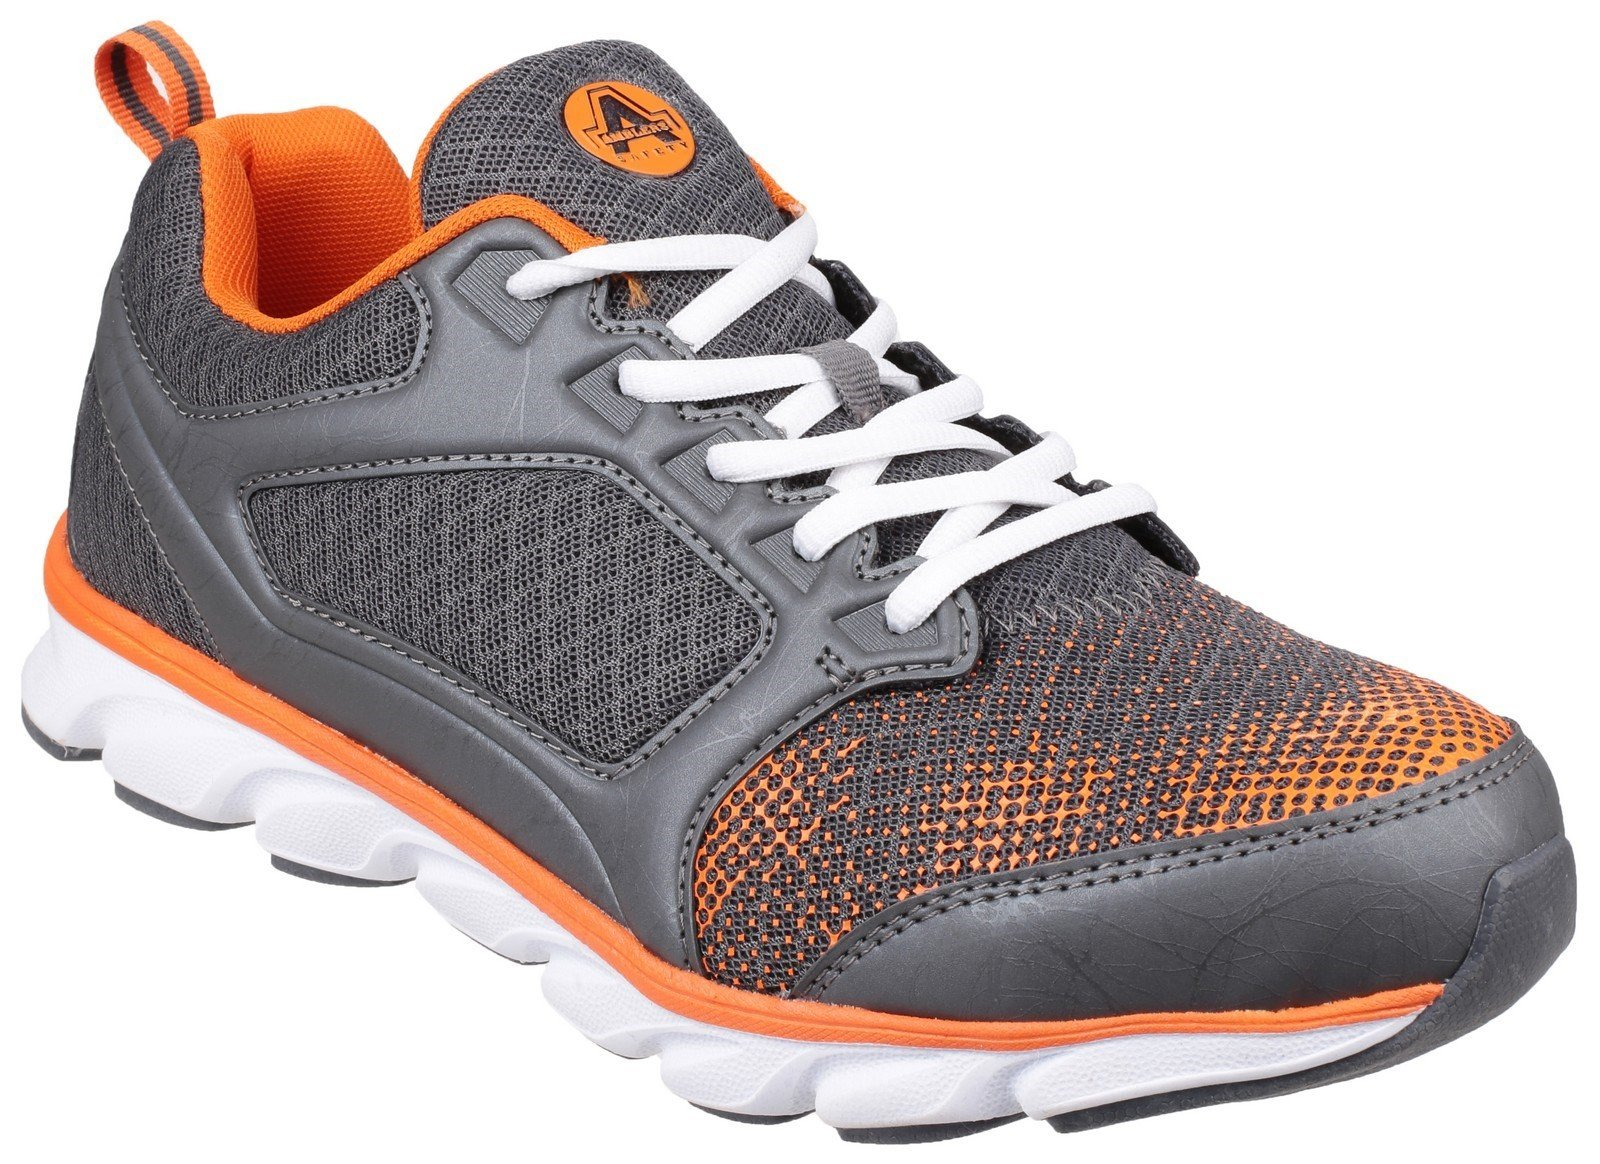 Amblers Unisex Safety Lightweight Non Leather Trainer Various CO - Grey/Orange 6